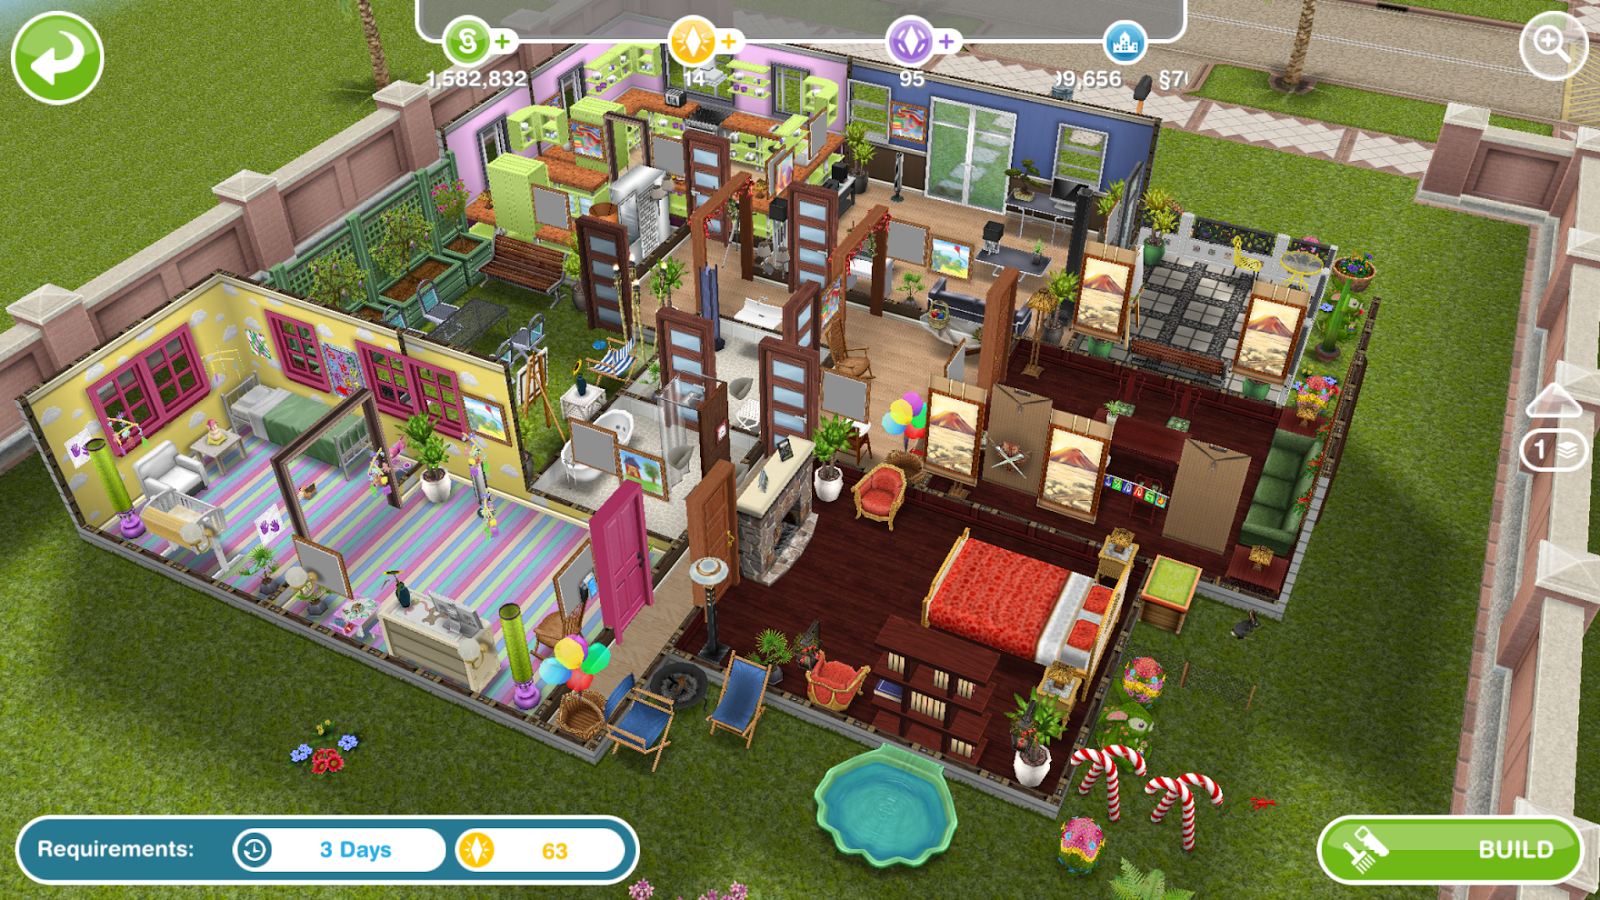 Sims freeplay architect homes easter edition greenoid gemzicle - Sims freeplay designer home ...